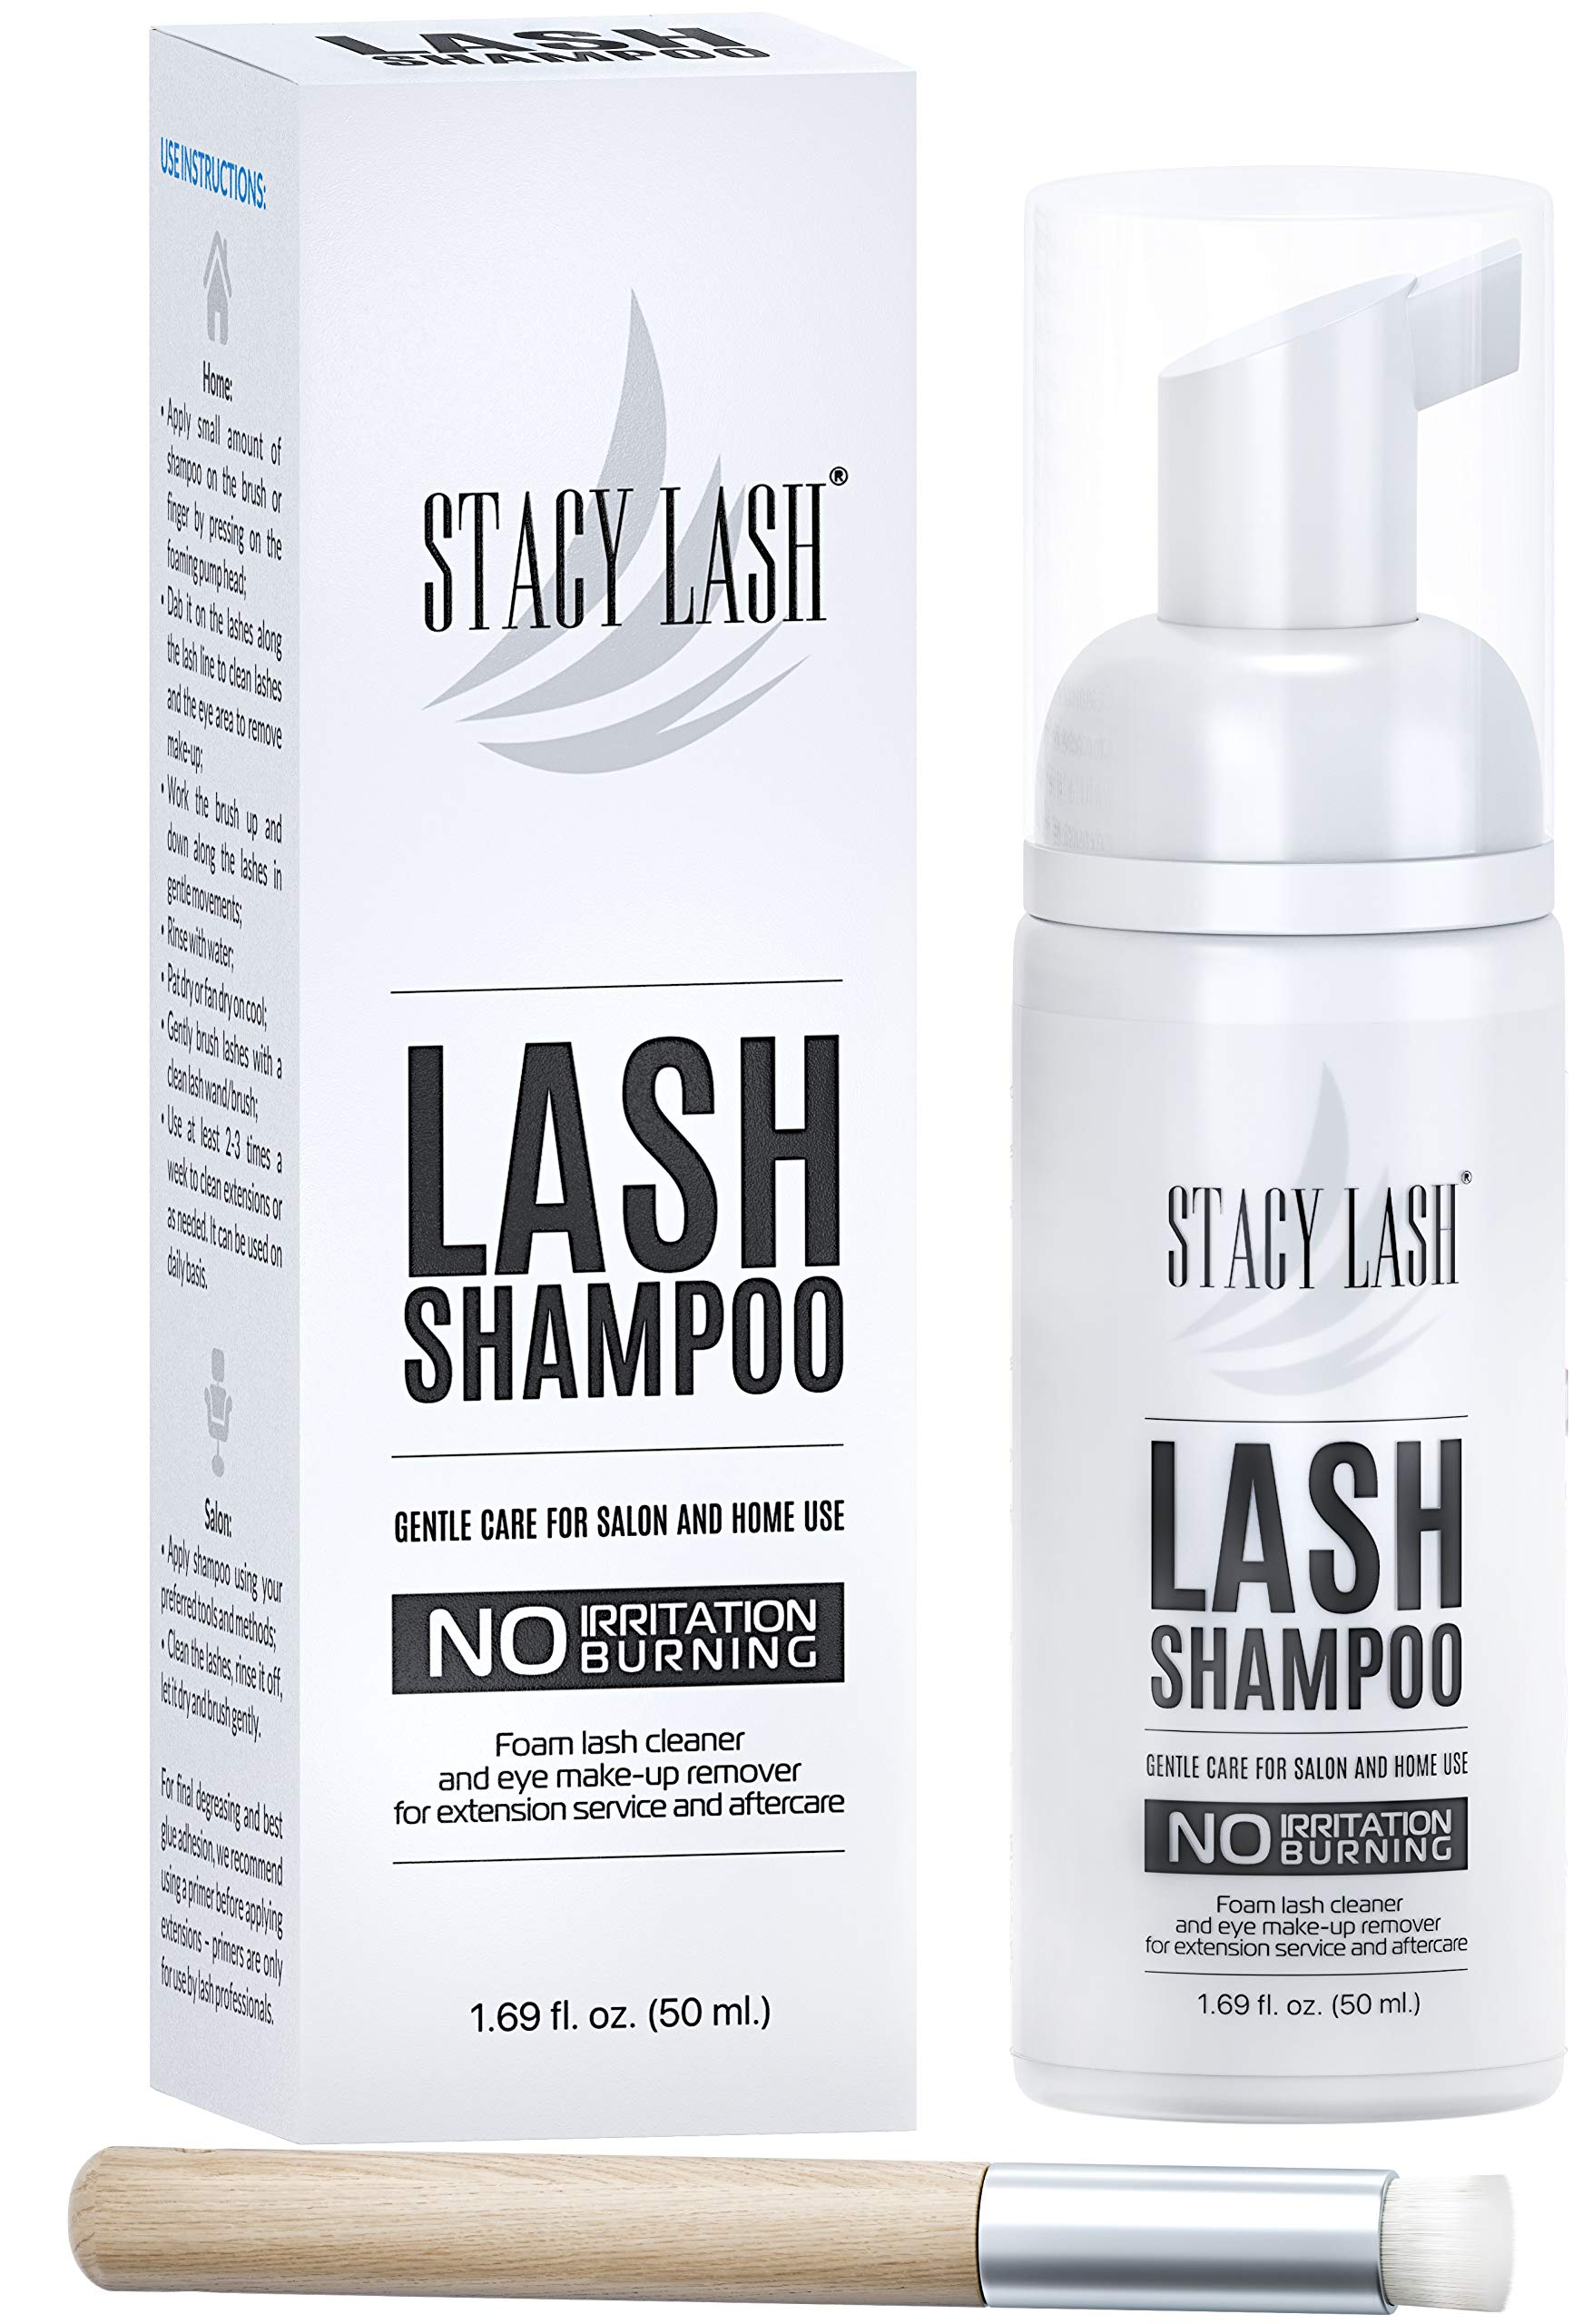 Eyelash Extension Shampoo Stacy Lash + Brush / 1.69 fl.oz / 50ml / Eyelid Foaming Cleanser / Wash for Extensions and Natural Lashes / Paraben & Sulfate Free Safe Makeup & Mascara Remover / Professional & Self Use